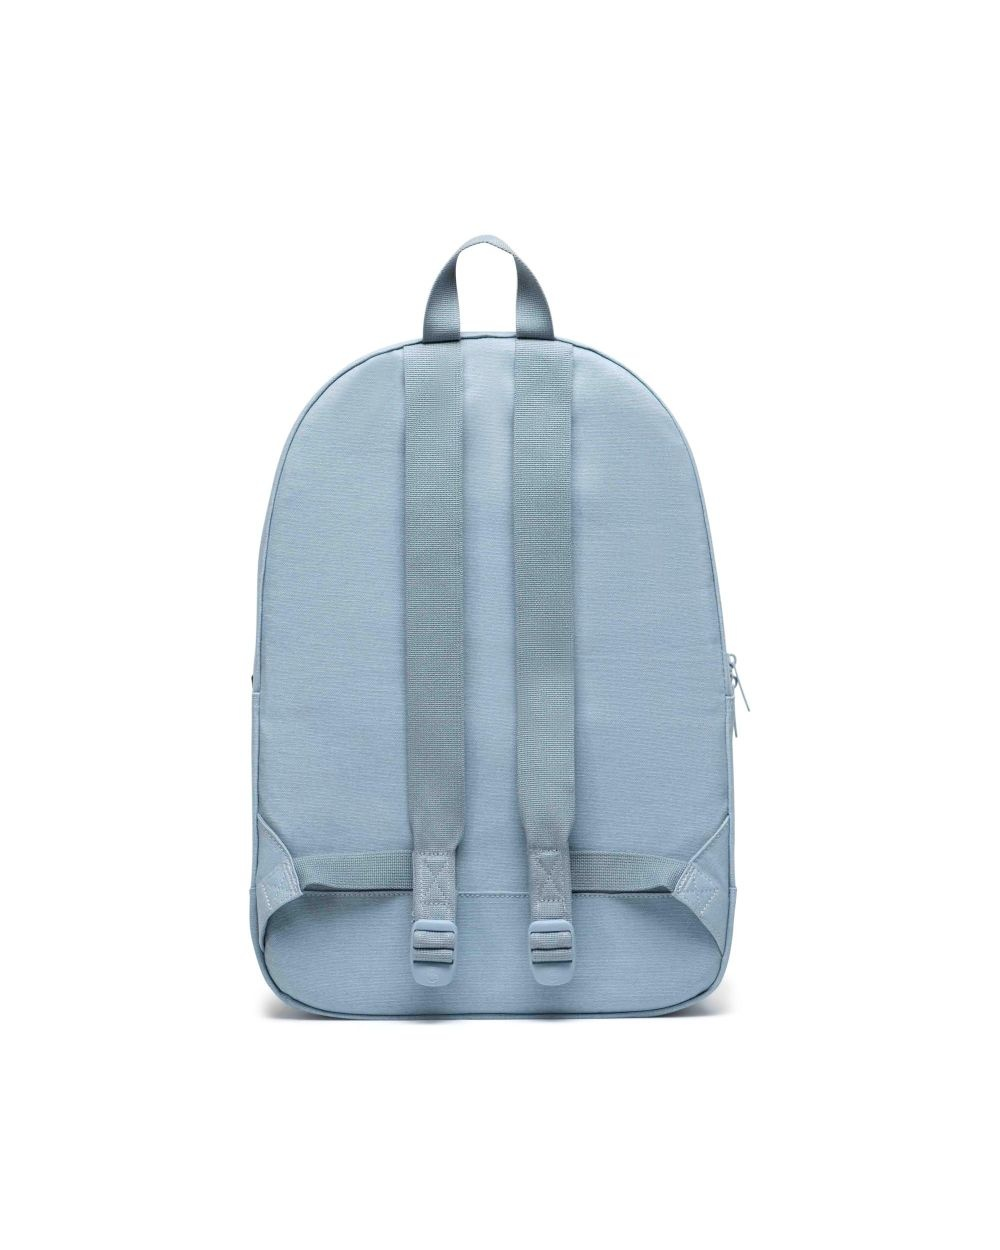 Cotton Casuals I Daypack blue fog-4